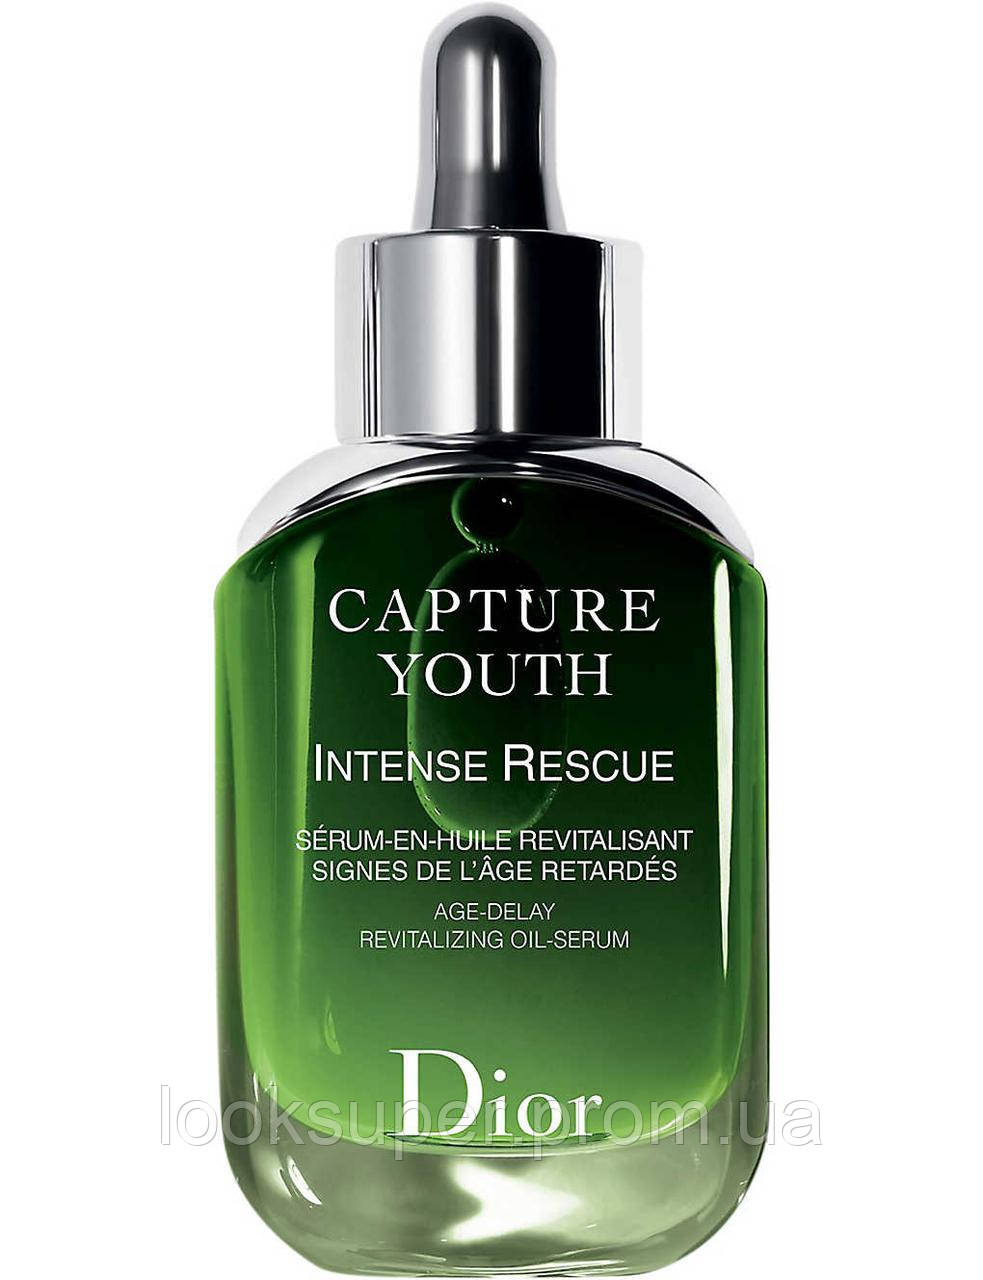 Восстанавливающая сыворотка Capture Youth Intense Rescue Age-Delay Revitalizing Oil-Serum (30ml)